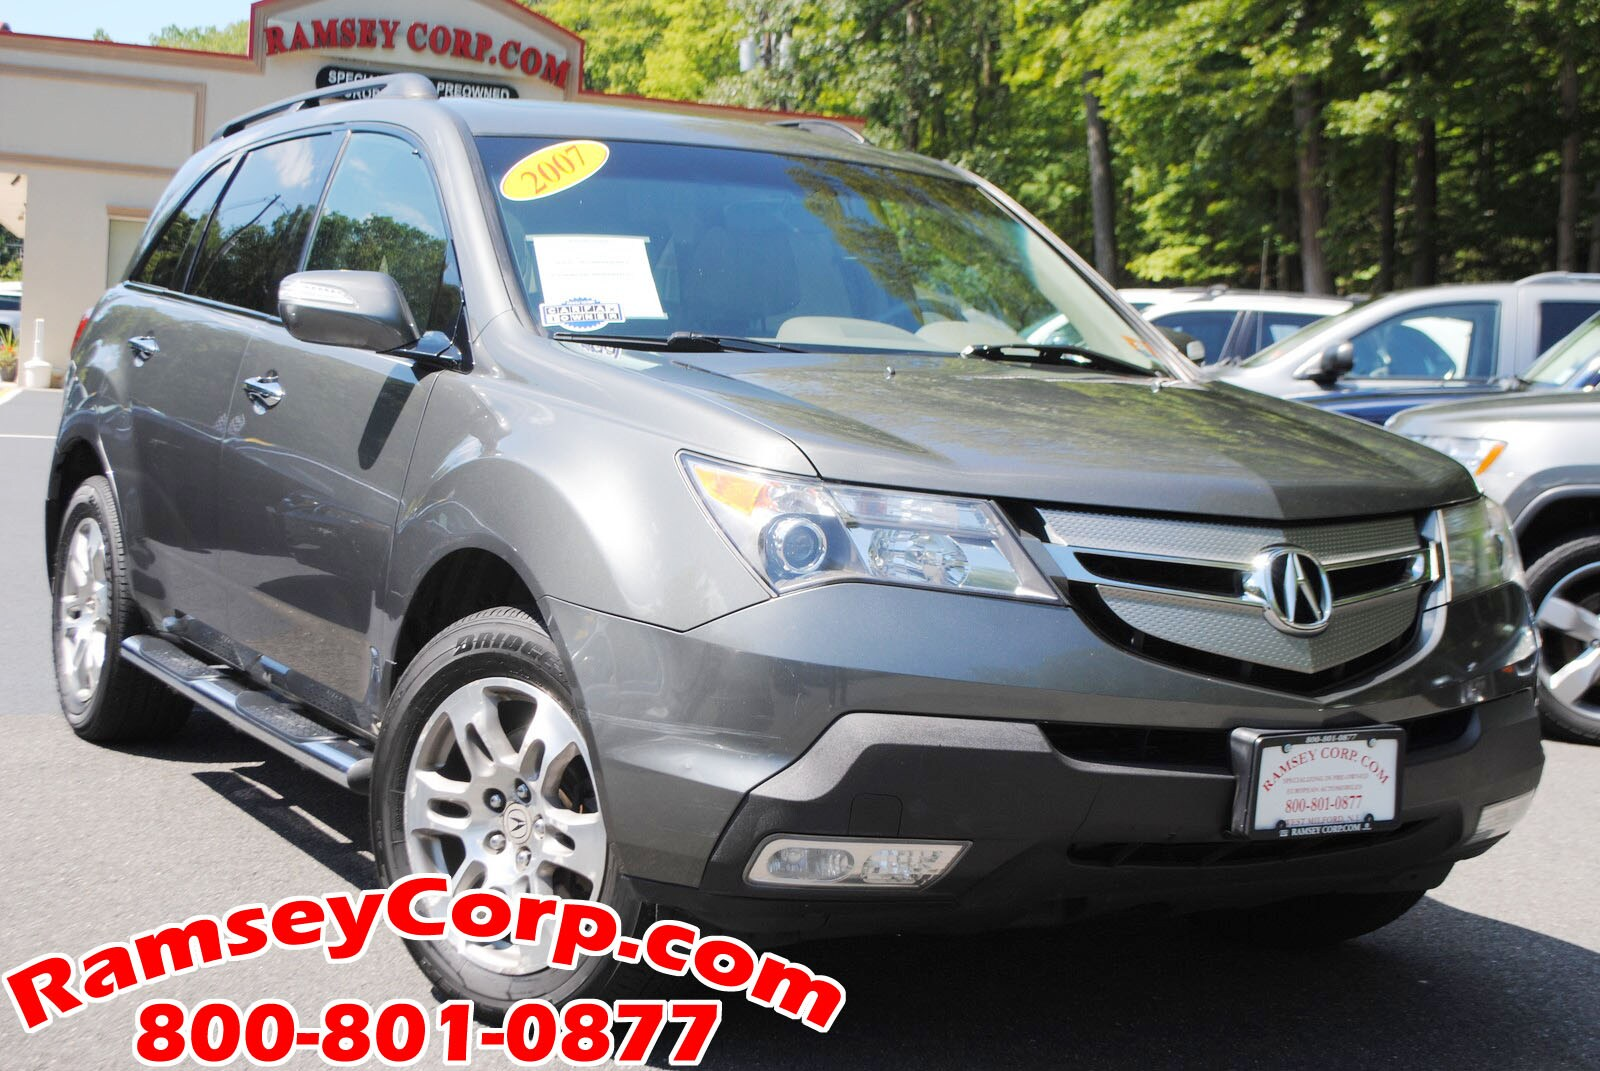 5616d25e0a0e0ac930fa7e2b219d64fb?impolicy=resize&w=650 used 2007 acura mdx for sale at ramsey corp vin 2hnyd28467h509455